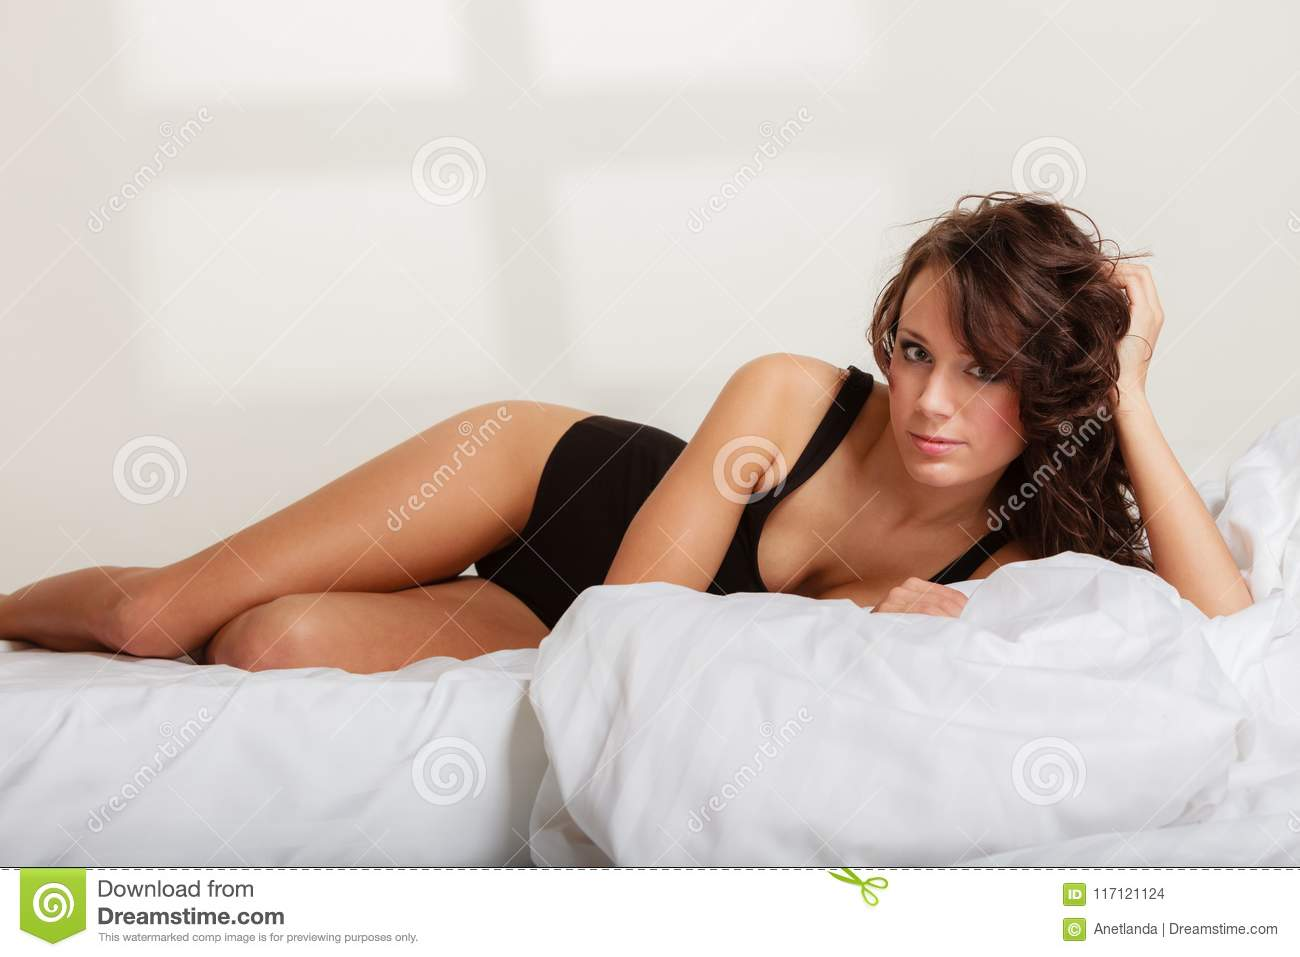 Remarkable Girl Lazy Woman In Underwear Lying On The Bed Stock Photo Uwap Interior Chair Design Uwaporg